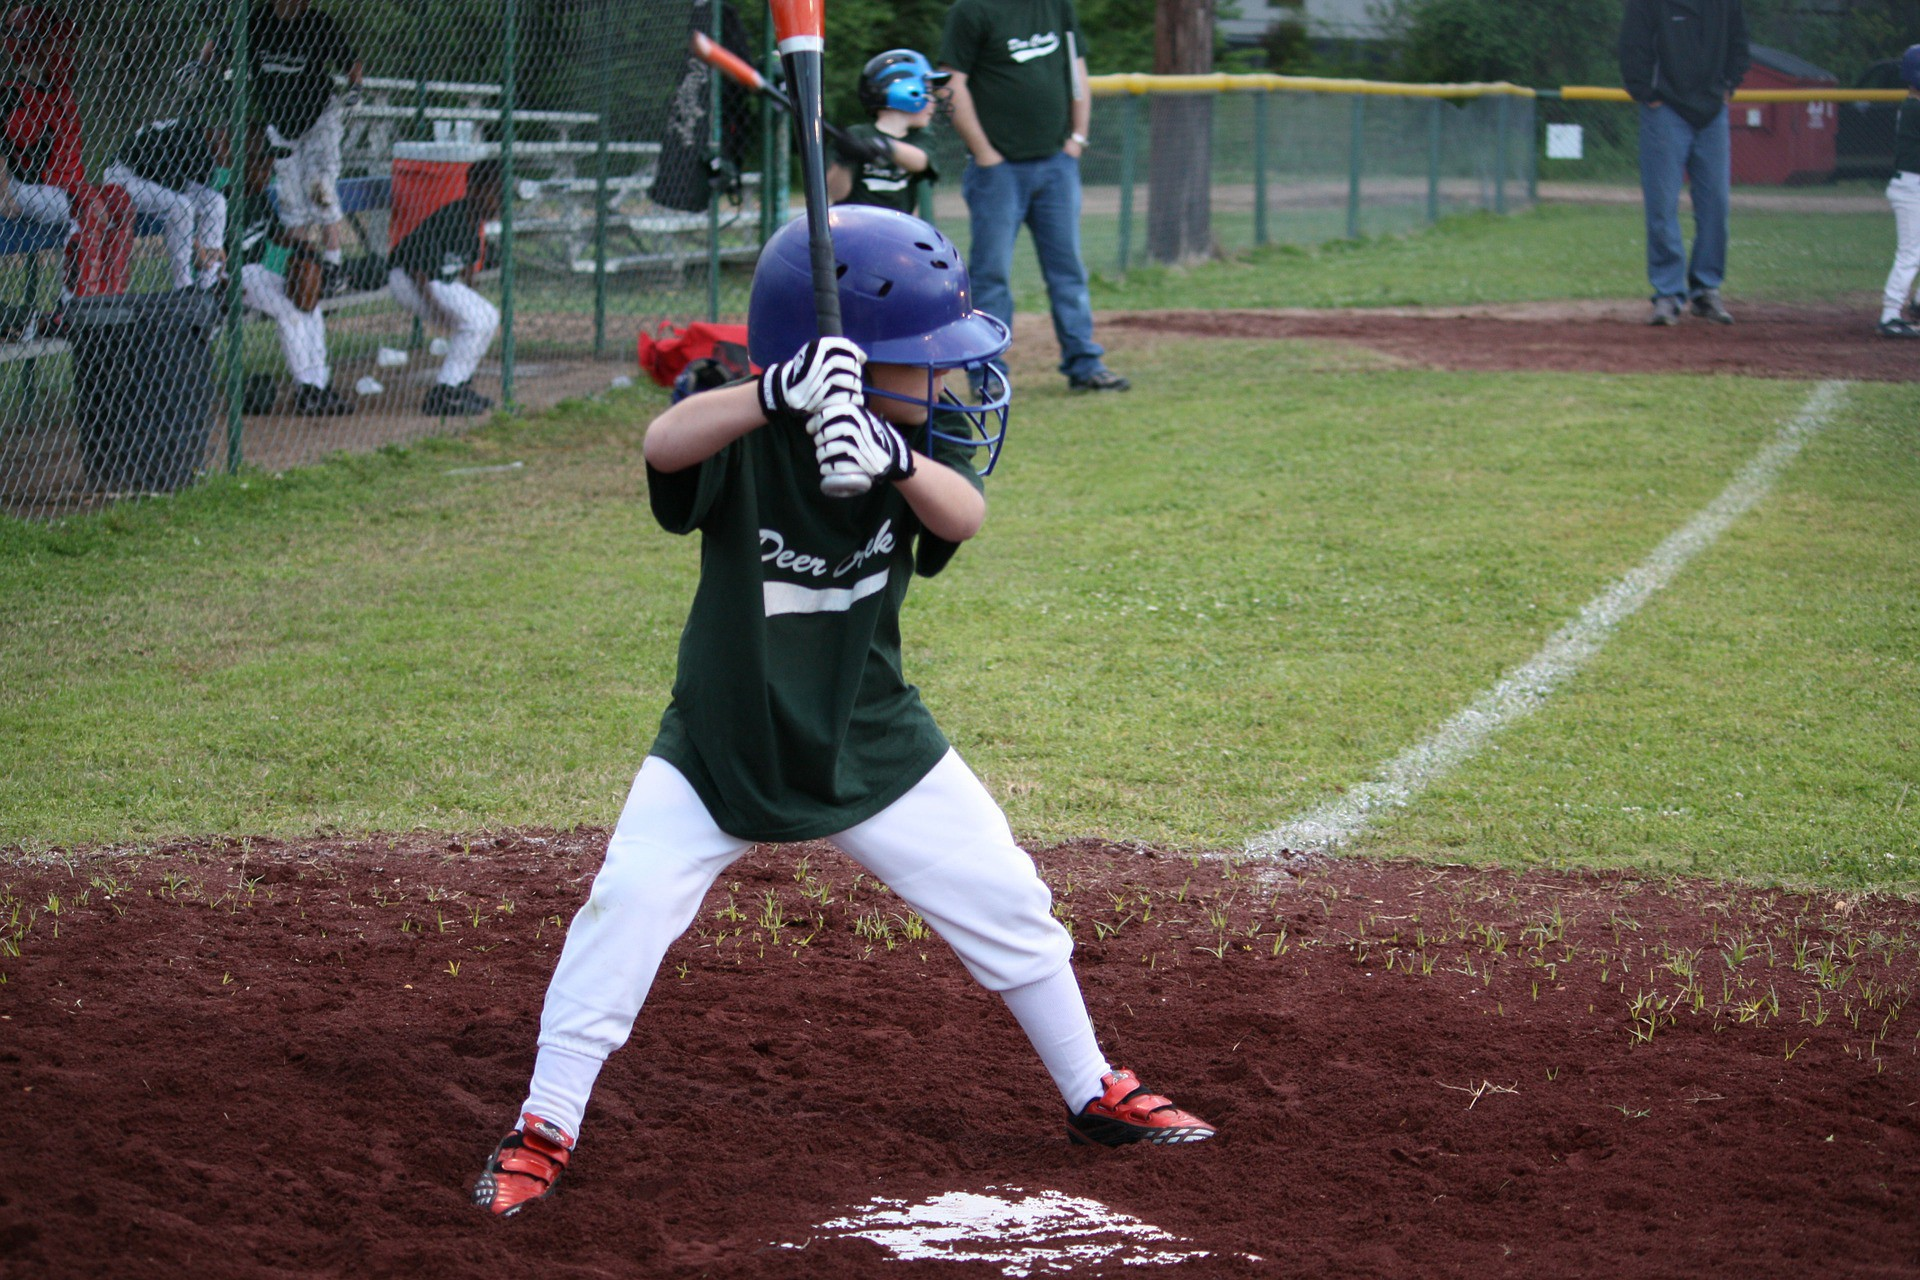 Baseball Skills Drills 18 Challenges Kids Can Do At Home Heja Youth Sports